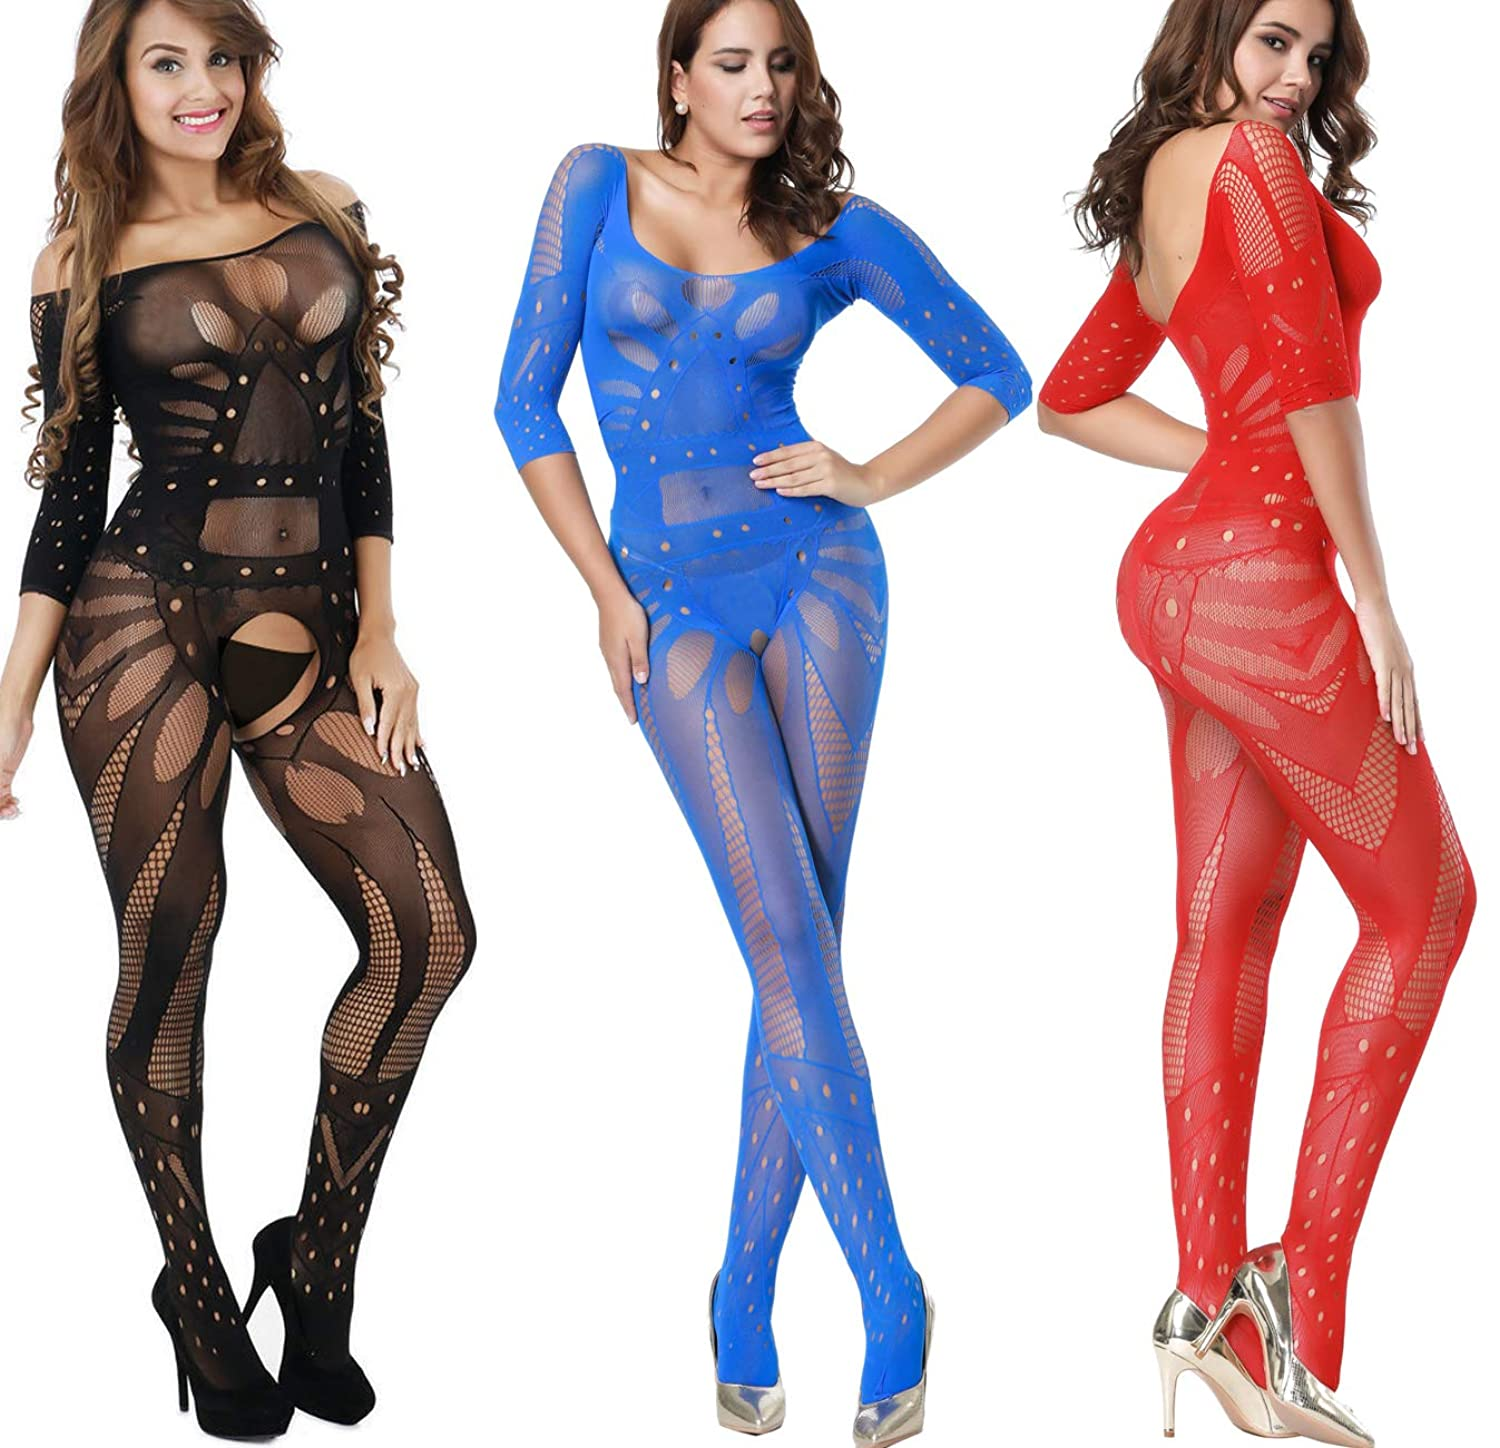 1bbc0ef0d 88% nylon + 12% spandex. Floral Body Stocking Show Your Best Body Curve Cut  Out Fishnet Hole Corset Trim Your Sexy Body Shape One Size Stretch-to-fit  Style ...